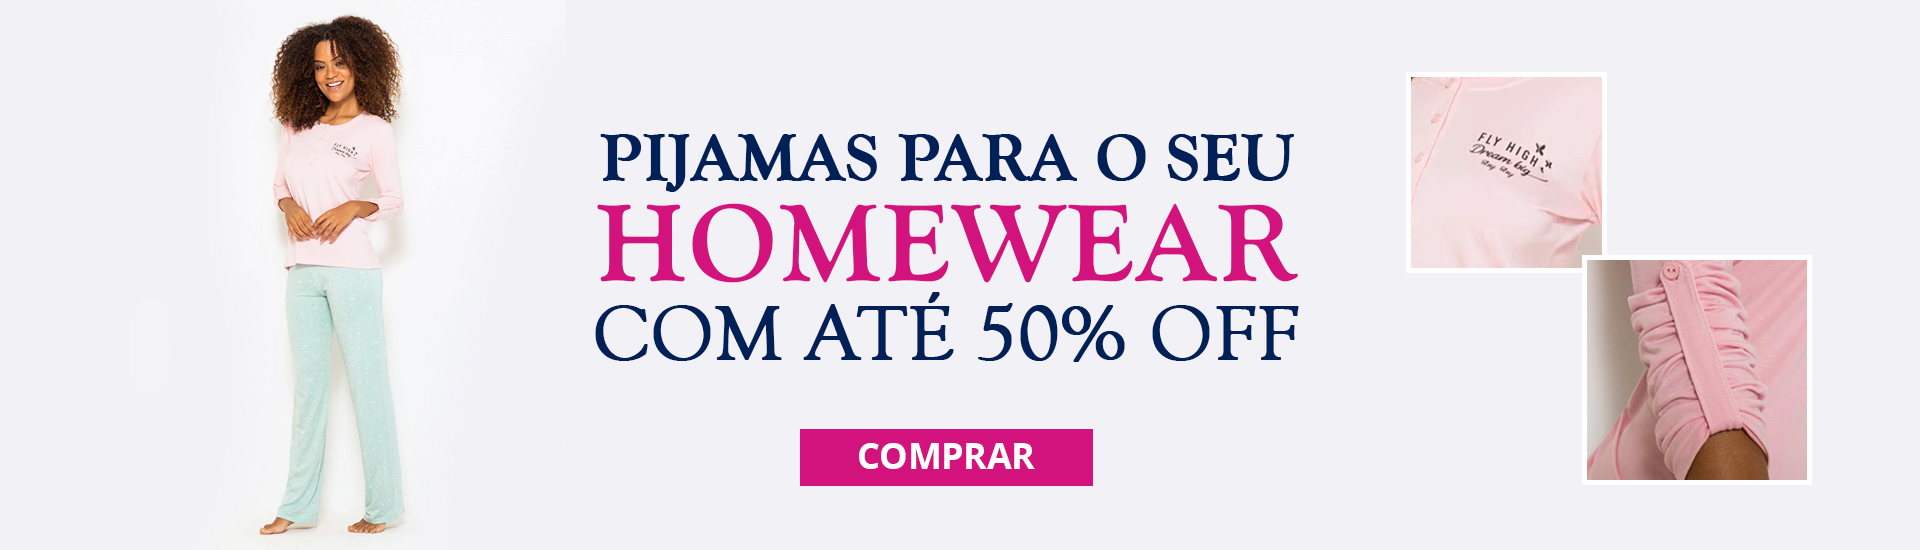 PIJAMAS COM ATE 50 OFF